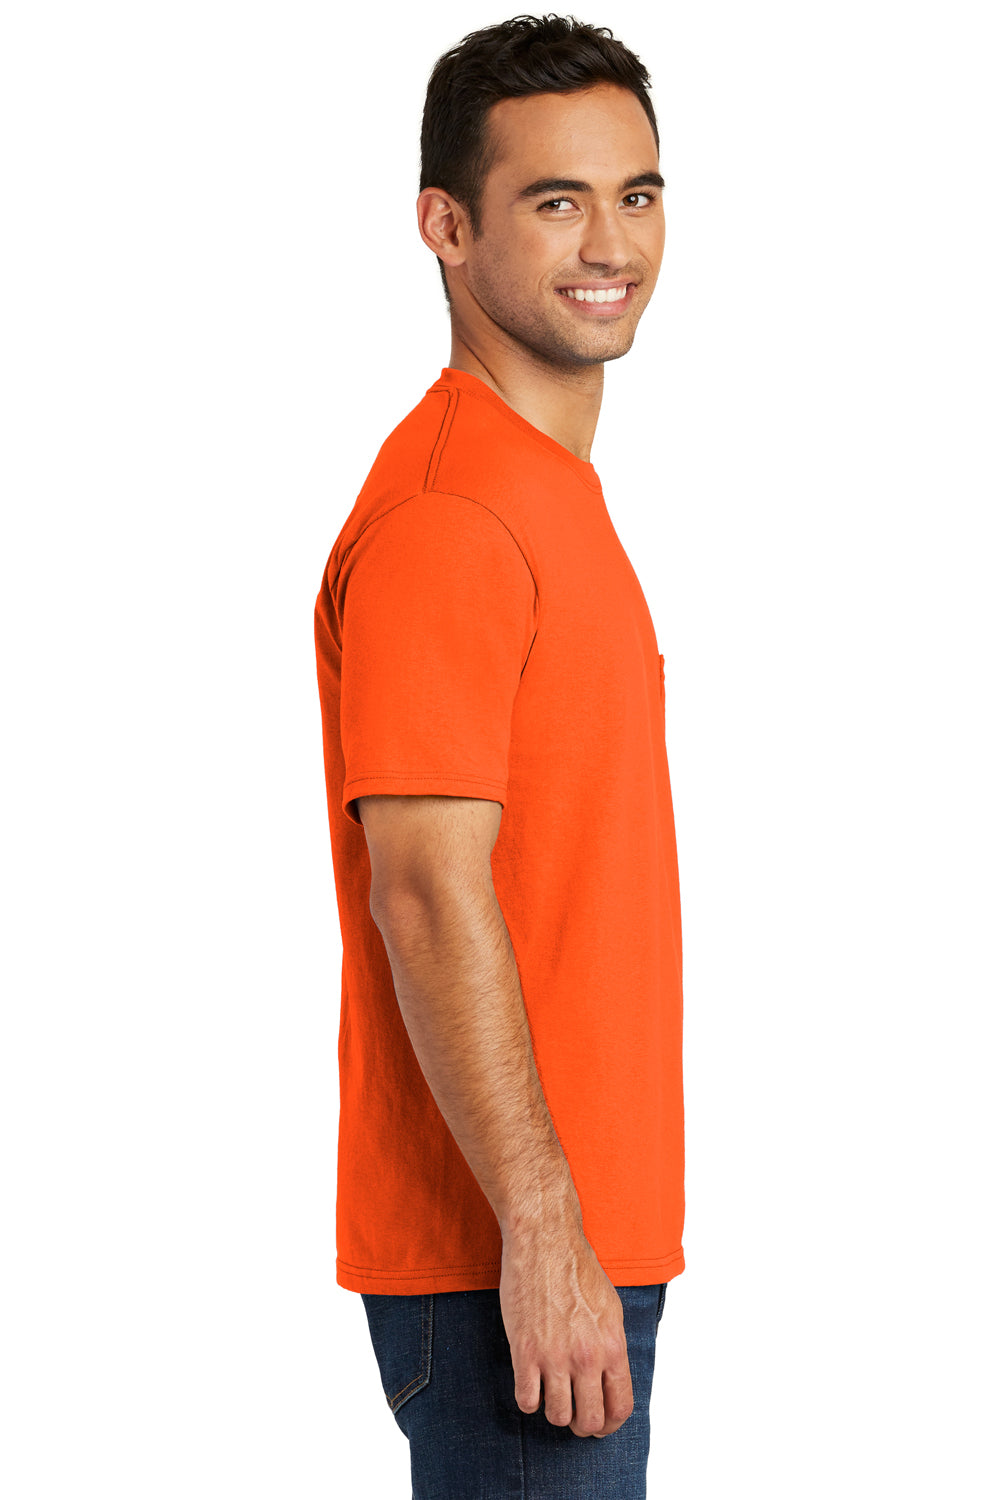 Port & Company USA100P Mens USA Made Short Sleeve Crewneck T-Shirt w/ Pocket Safety Orange Side